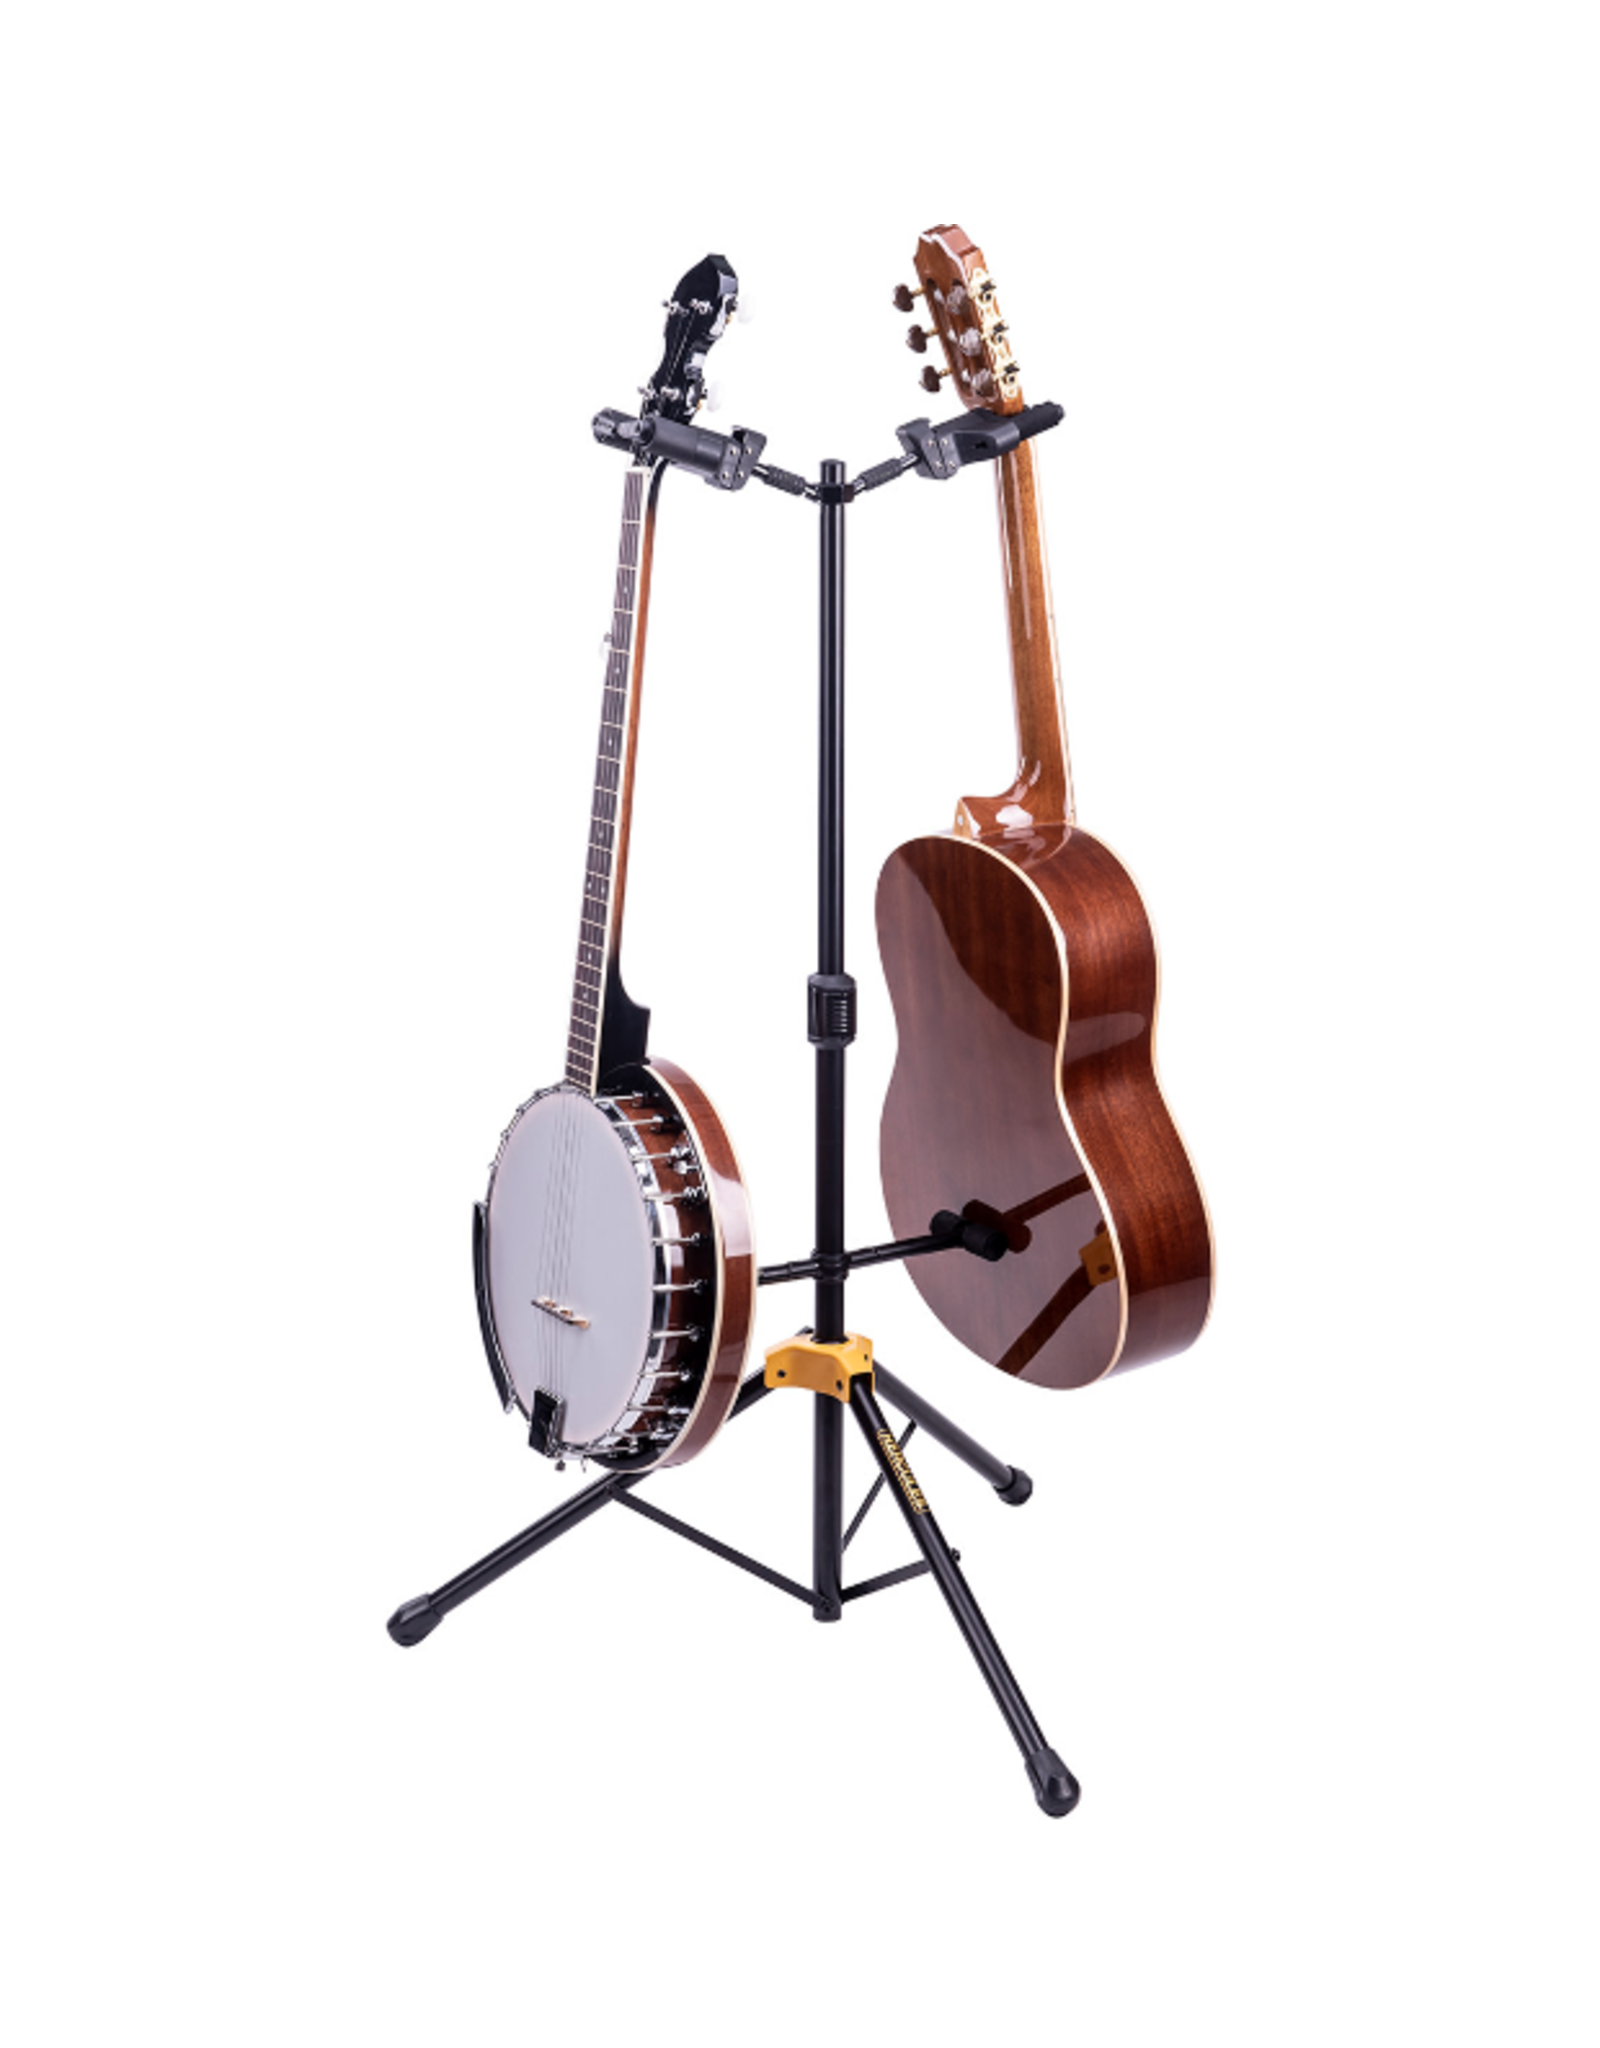 Hercules Hercules Auto Grip System (AGS) Double Guitar Stand, Foldable Backrest